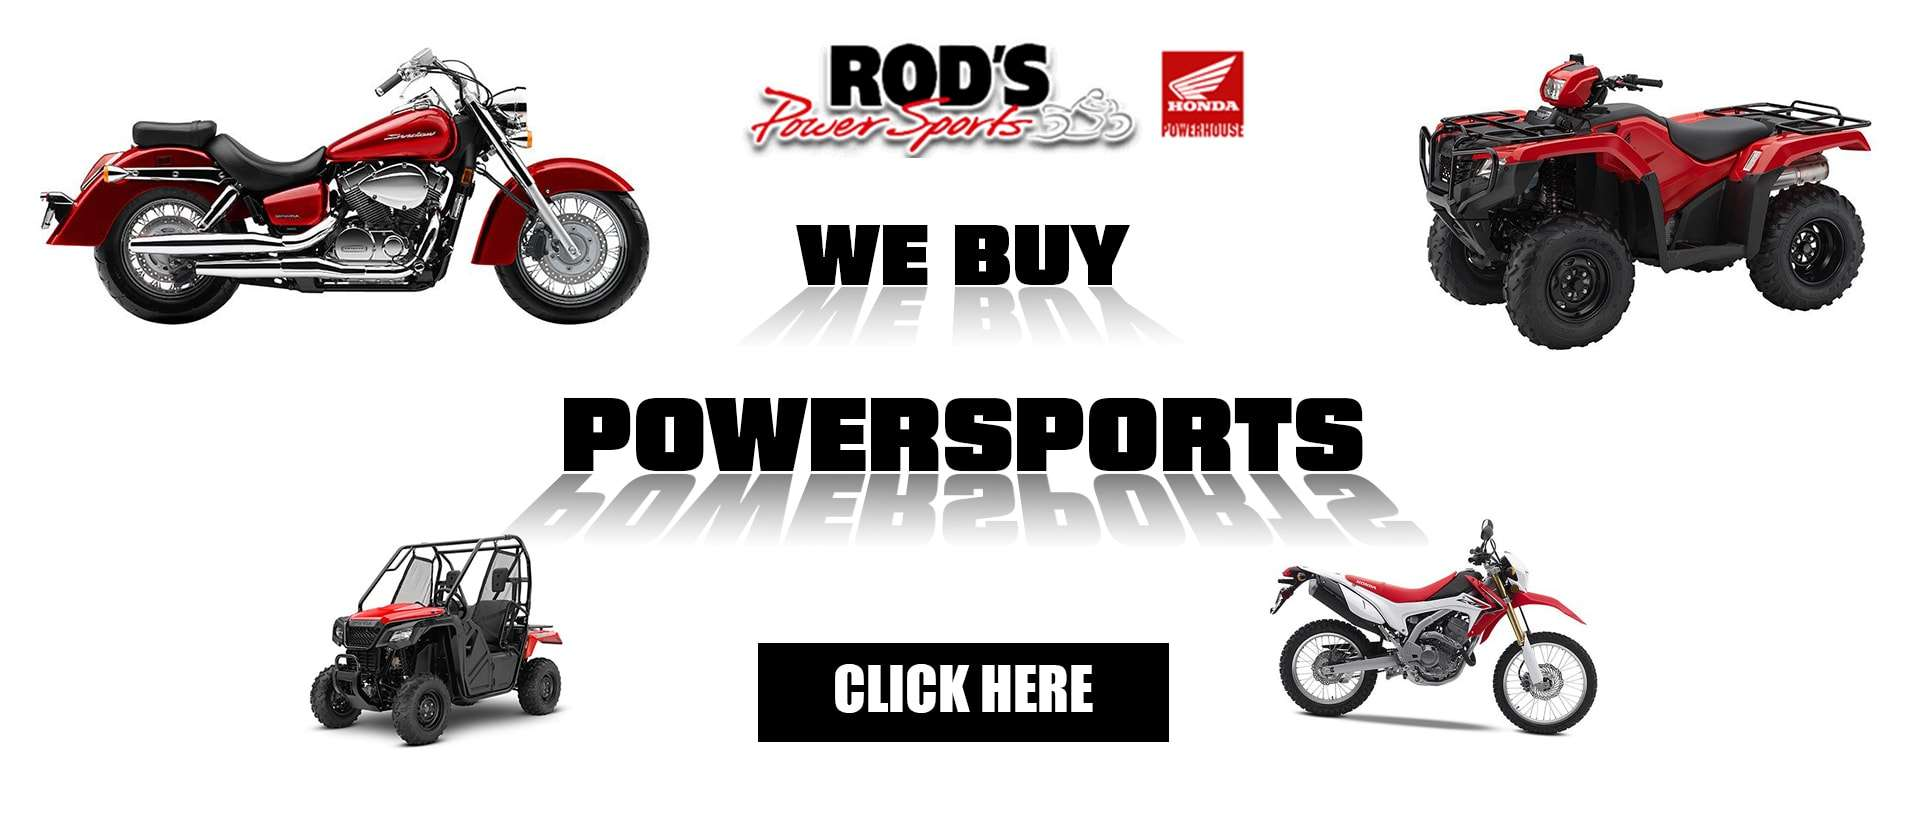 We Buy Powersports